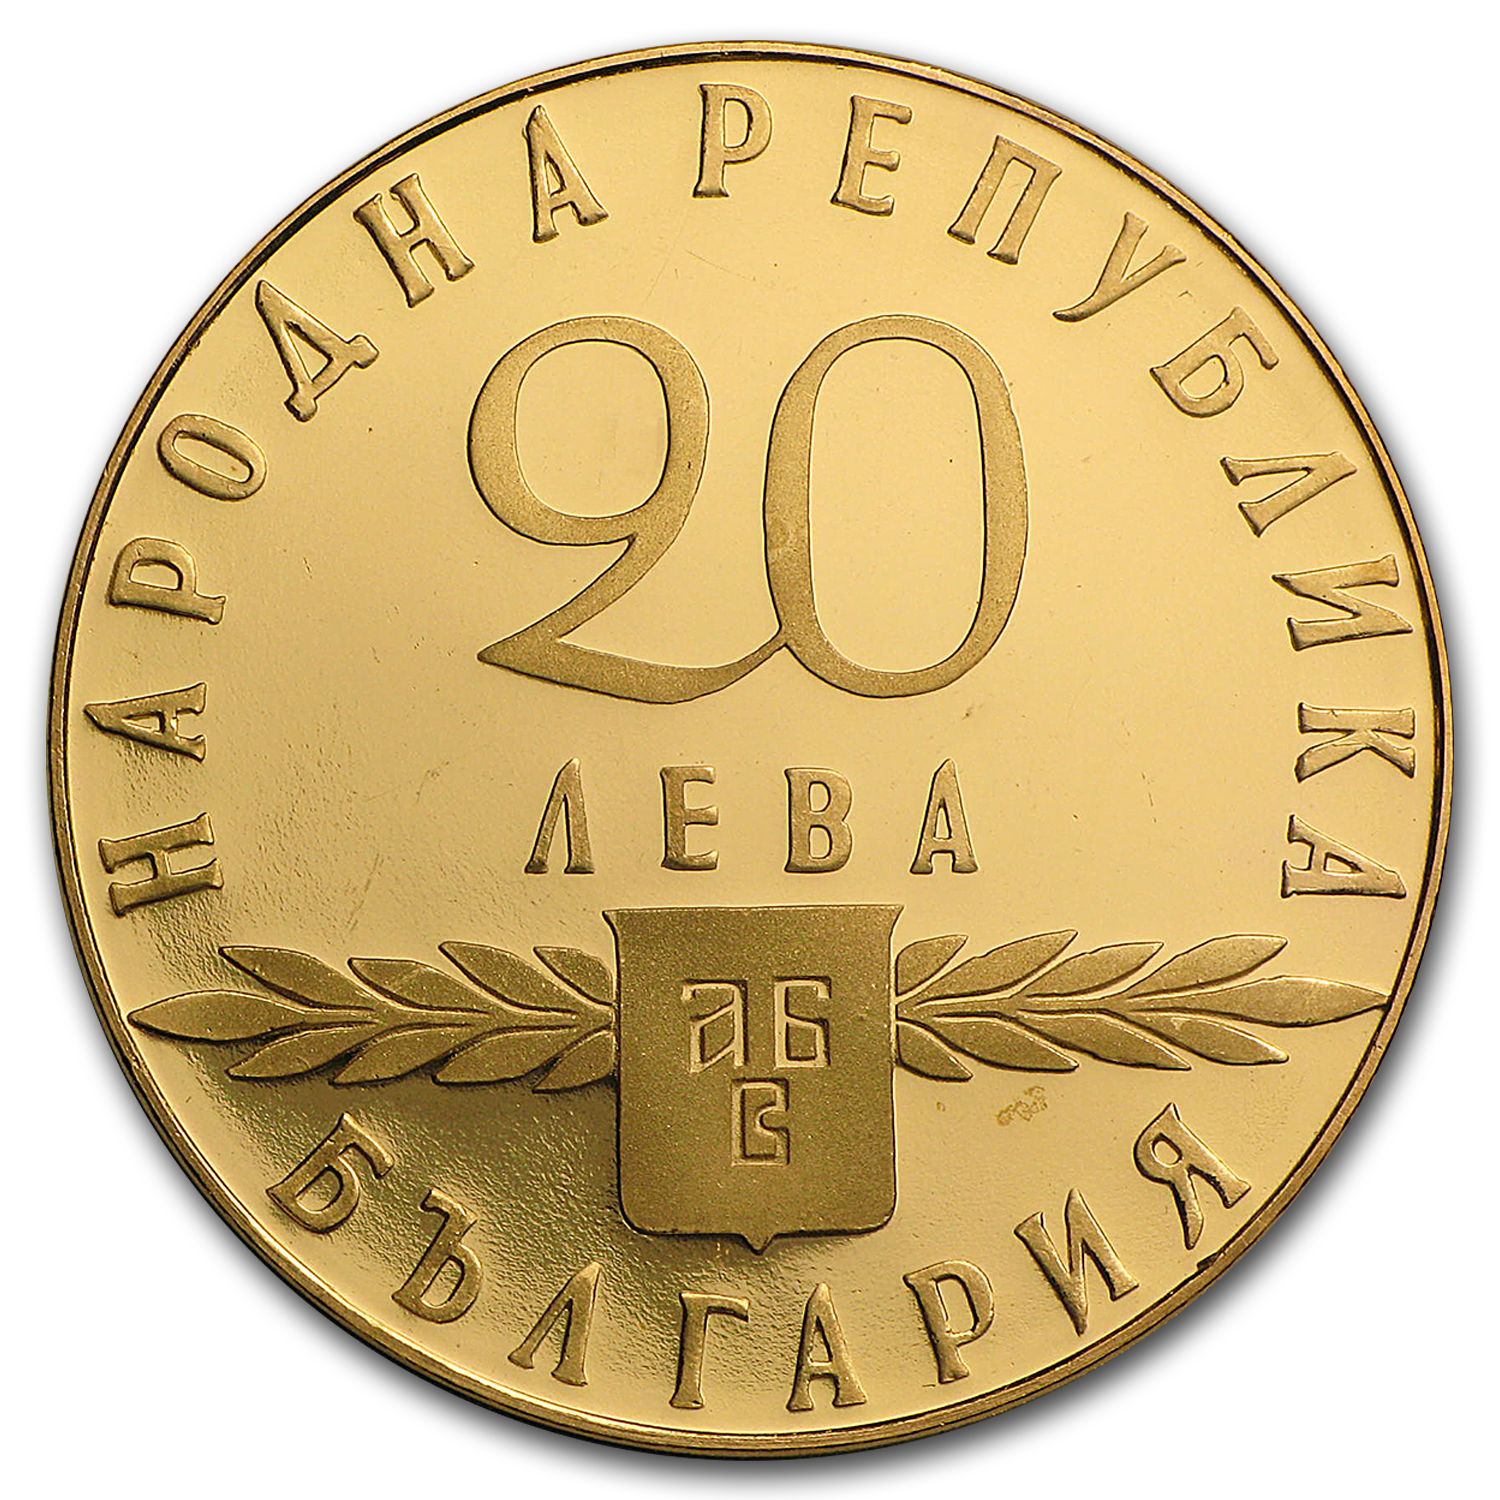 1963 Bulgaria Gold 20 Leva 1100th Anniv of Slavic Alphabet Proof